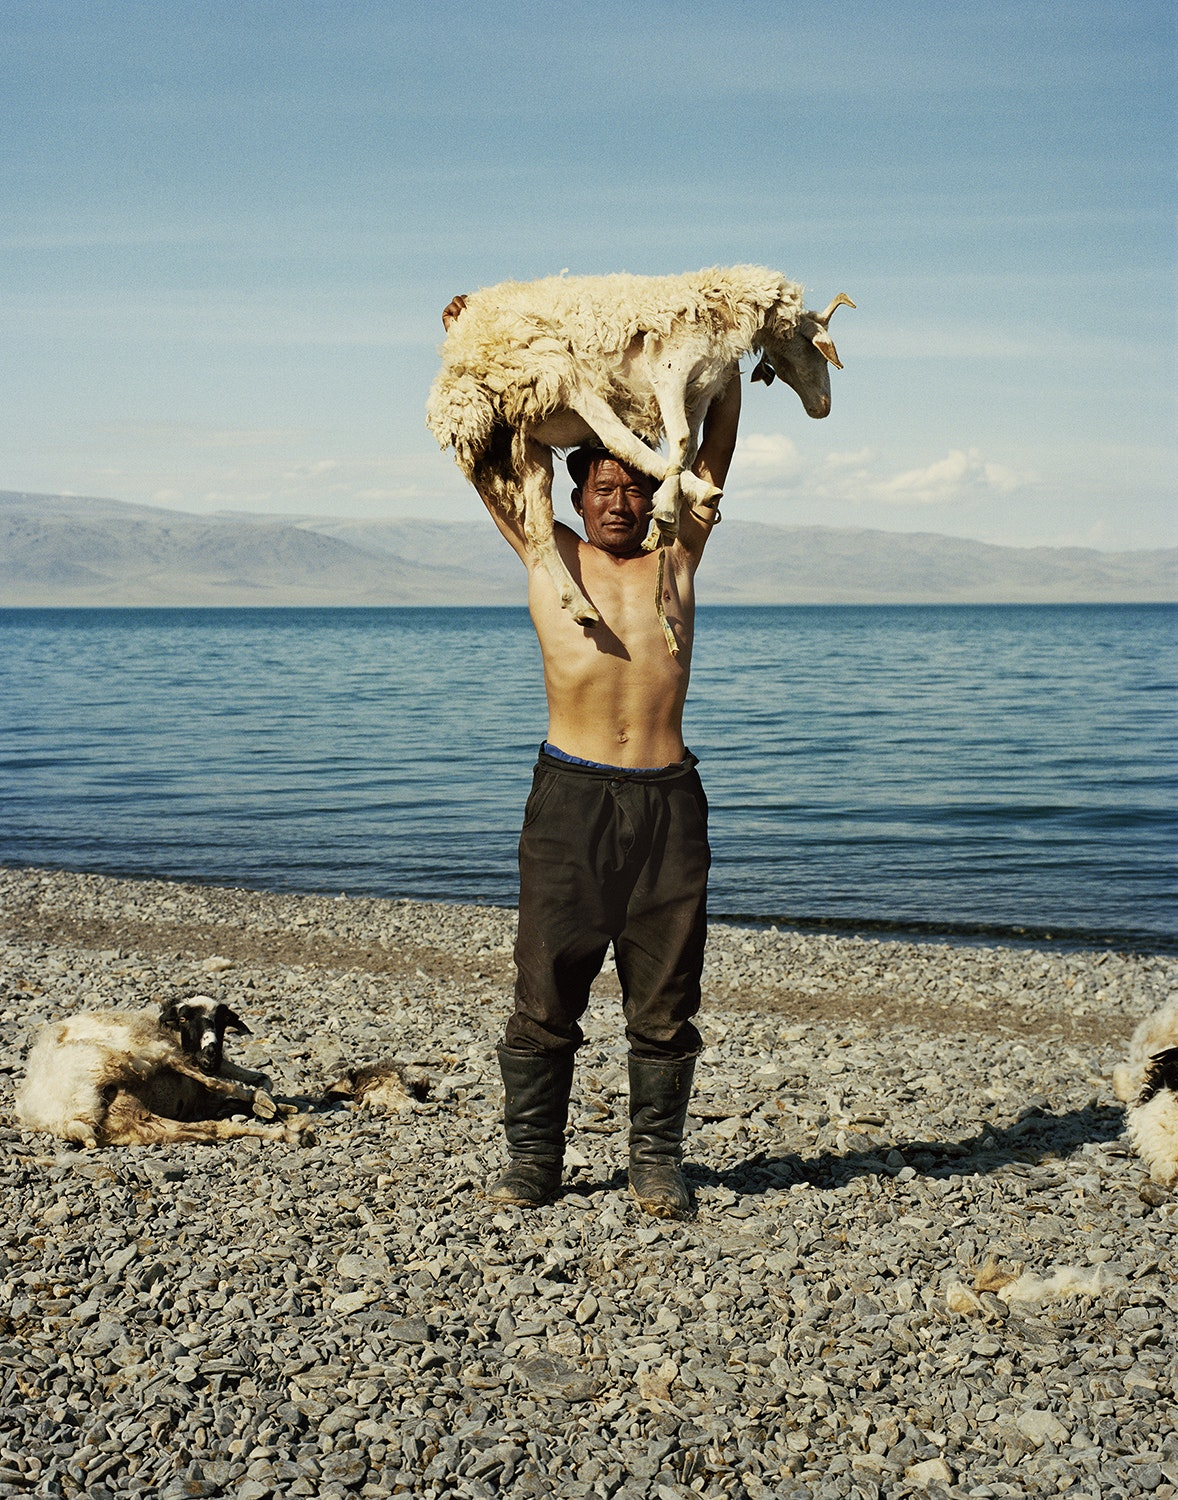 Mongolia's nomadic herders tend to sheep, goats, camels, yaks, and horses just as their ancestors have for thousands of years.